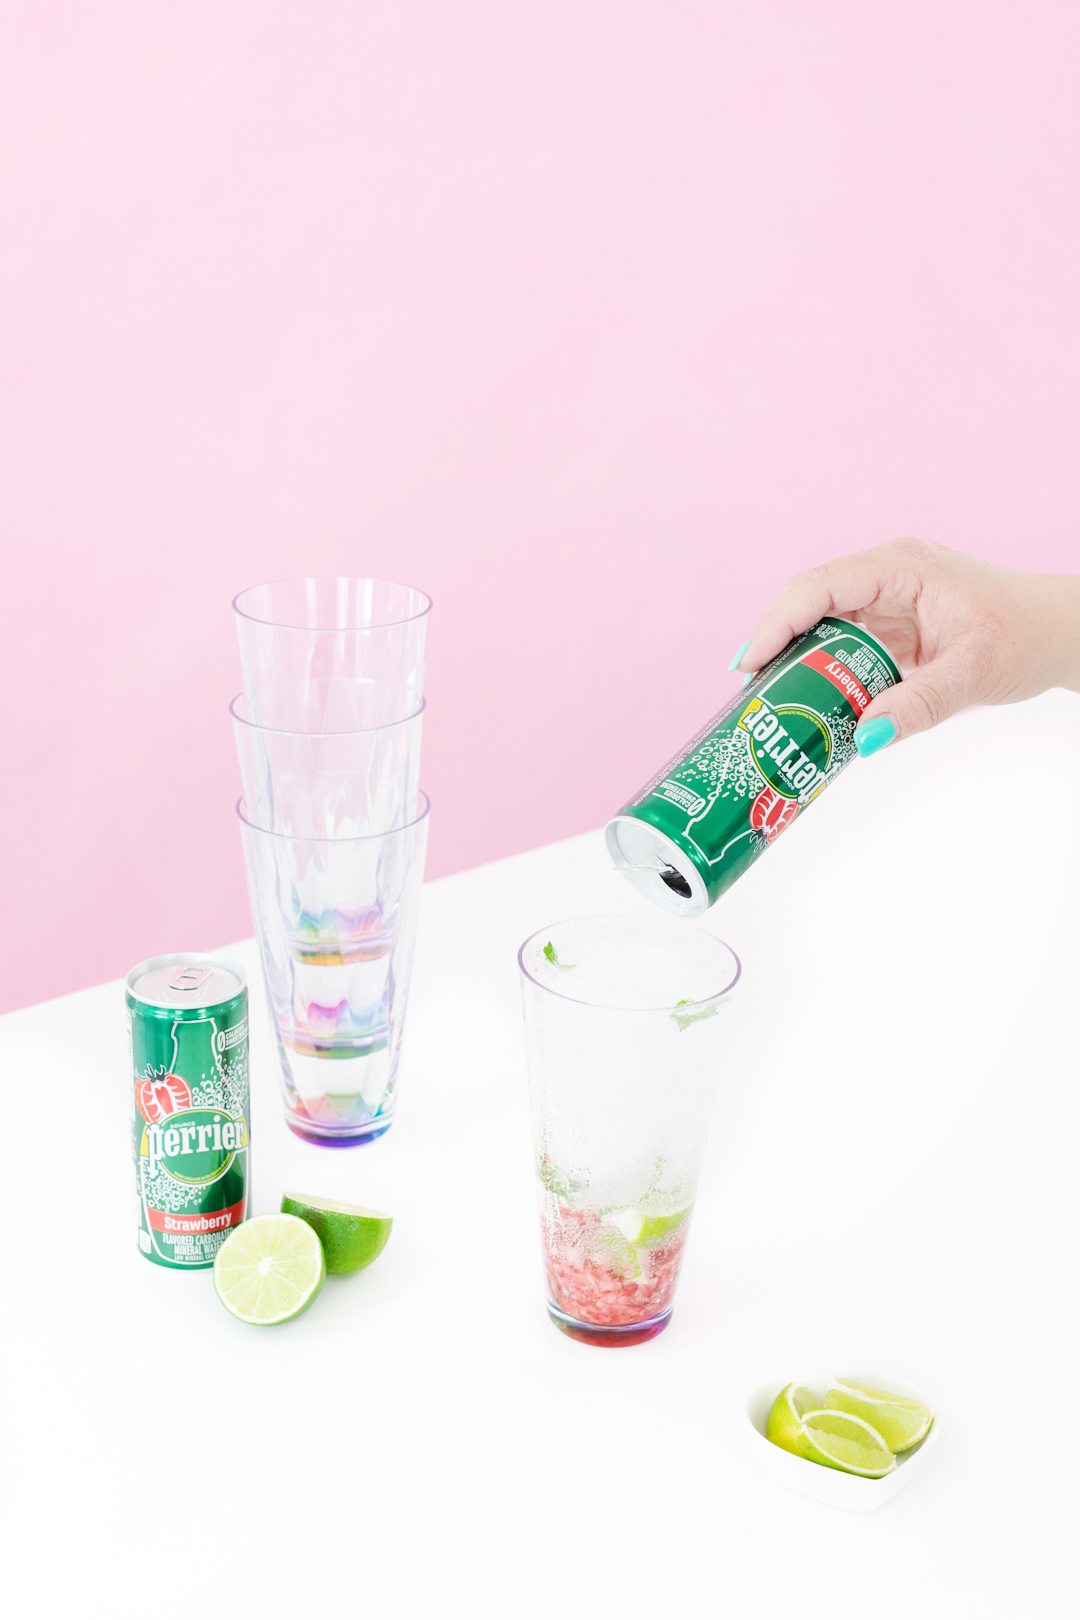 pouring can of perrier into cup